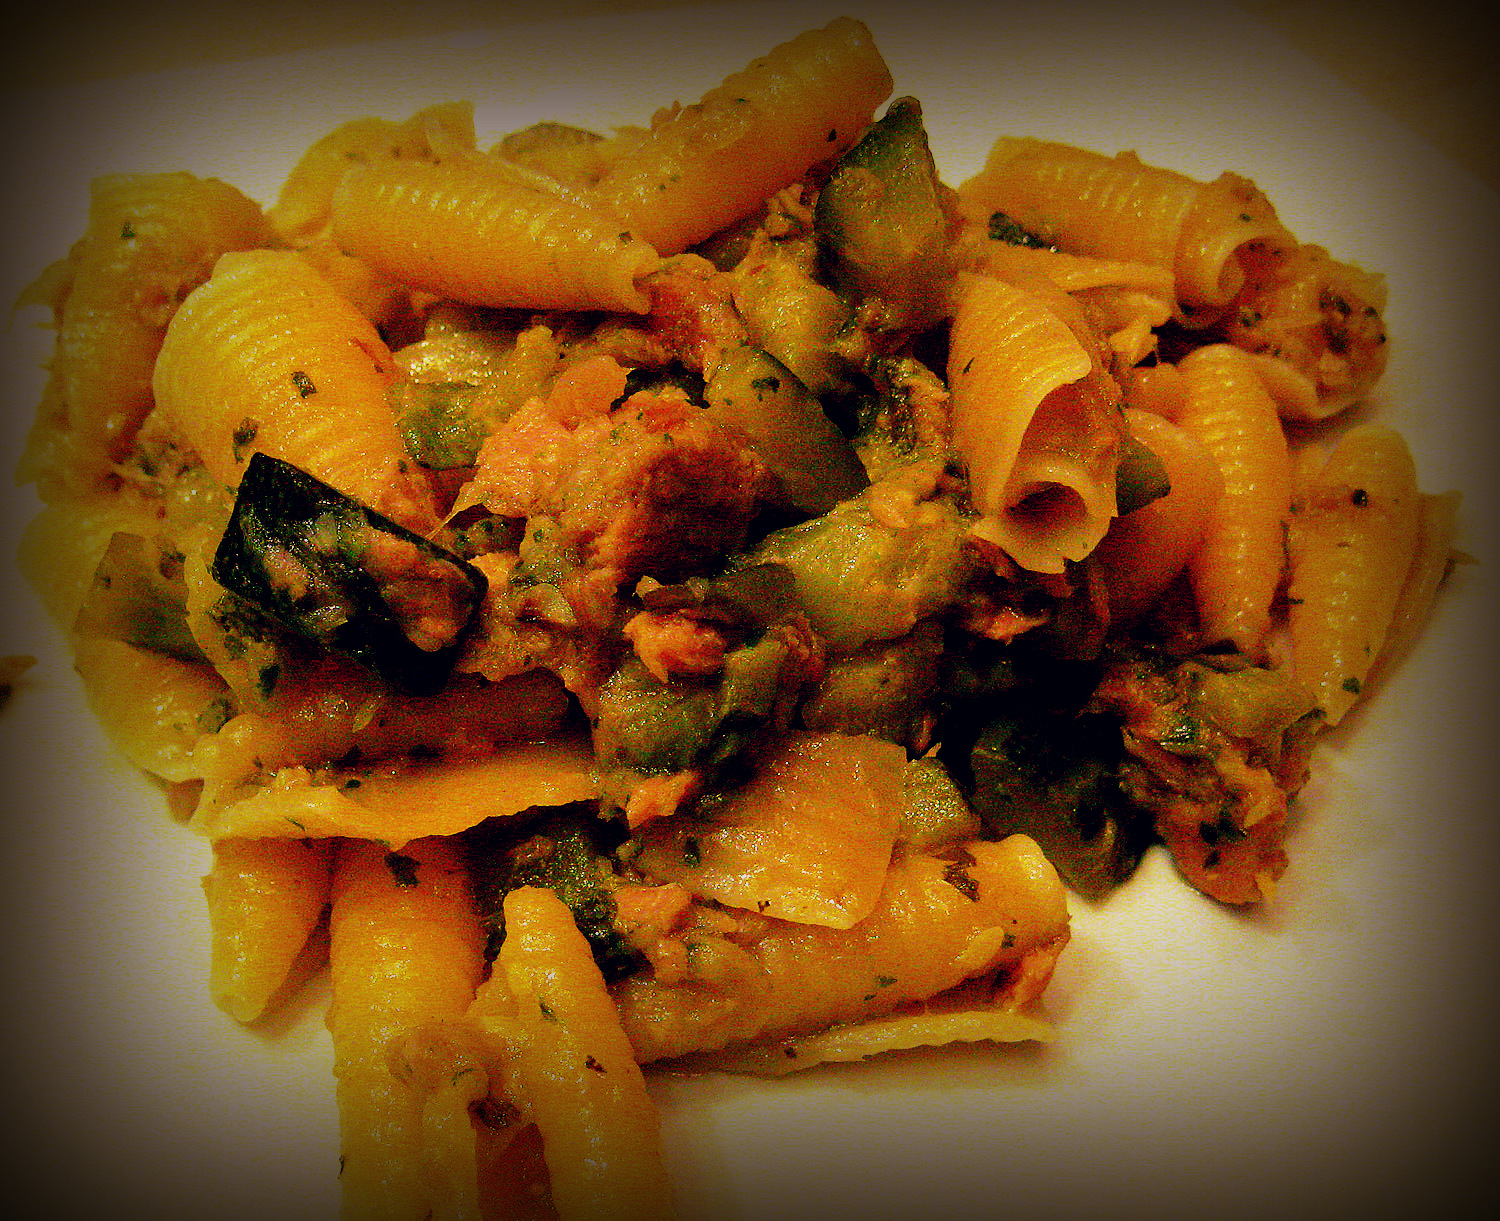 Penne with courgettes and tuna